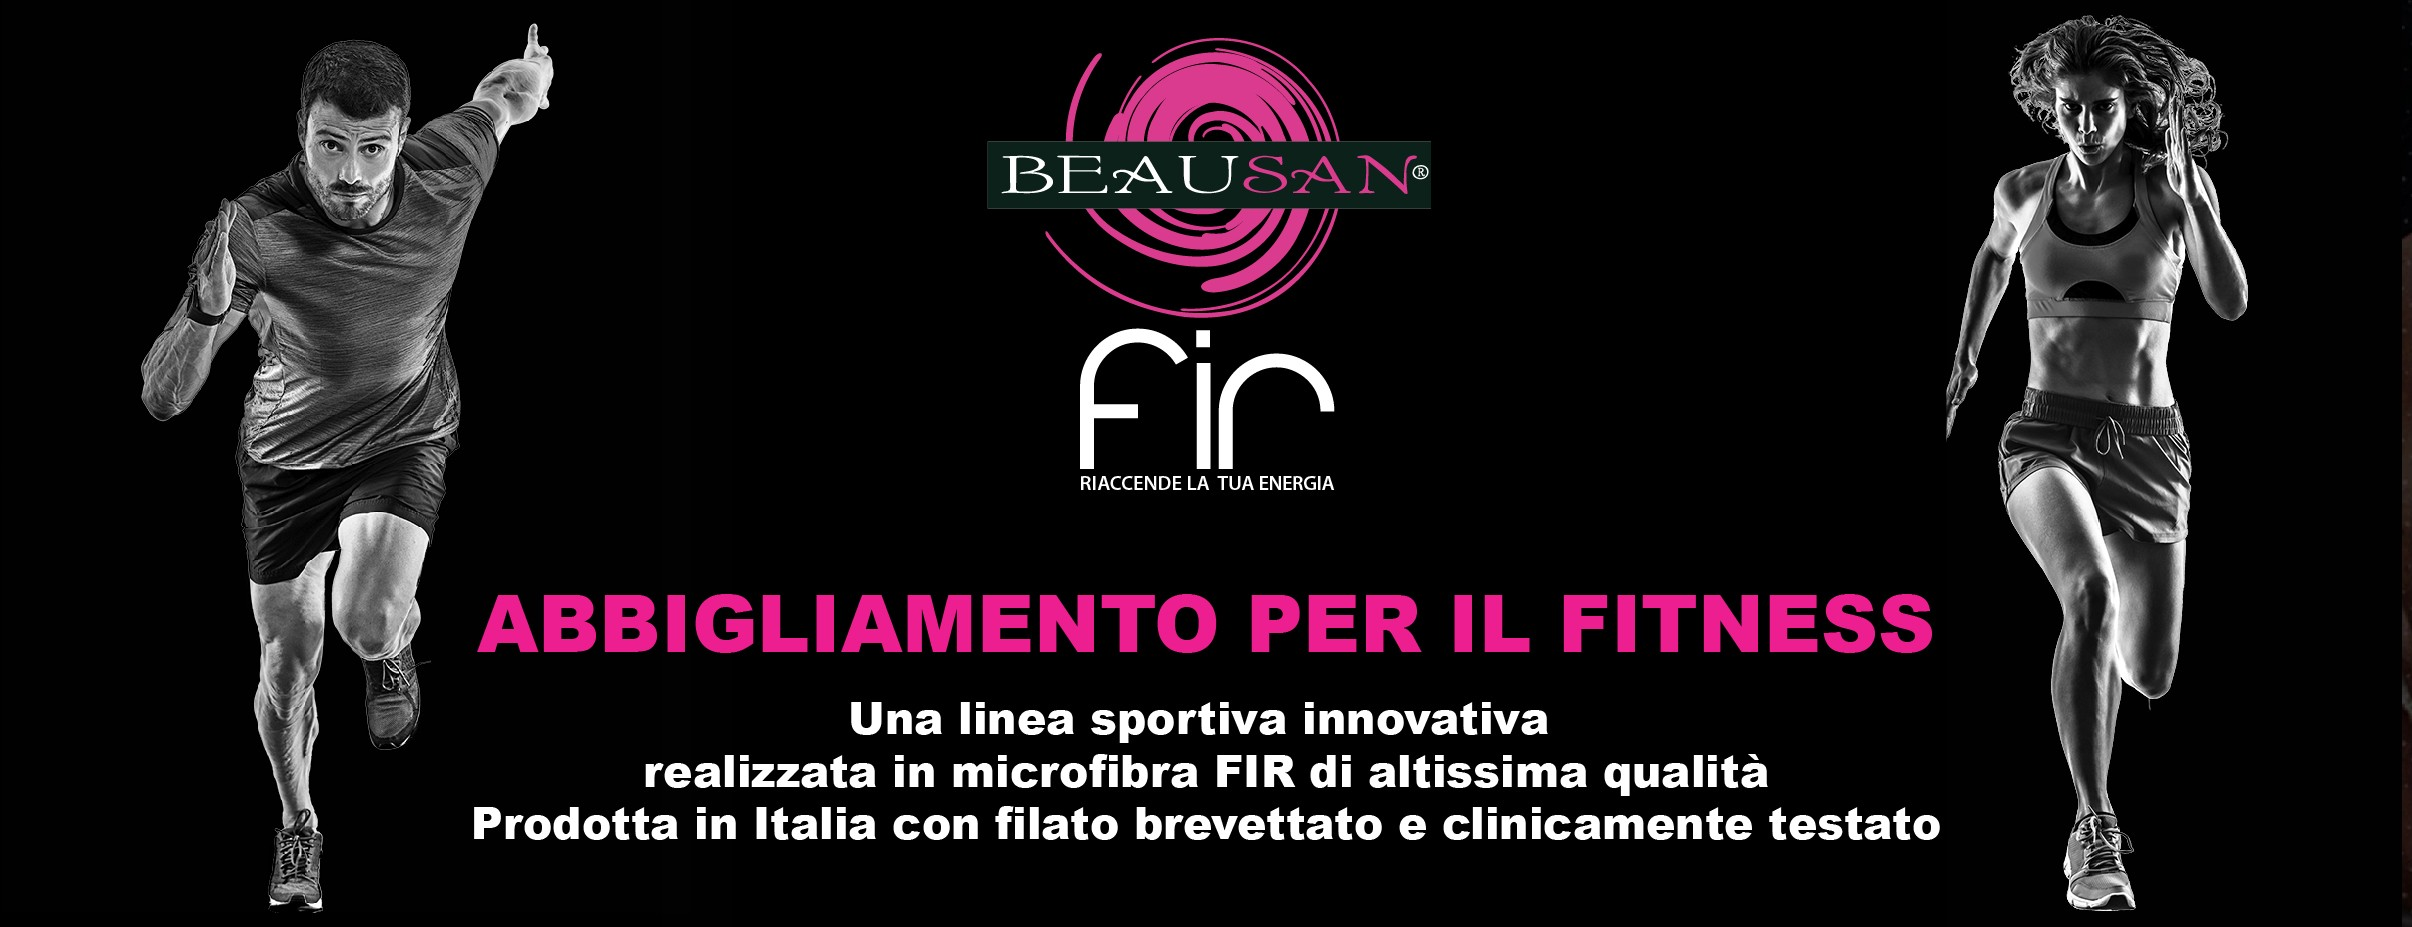 Fir beausan fitness